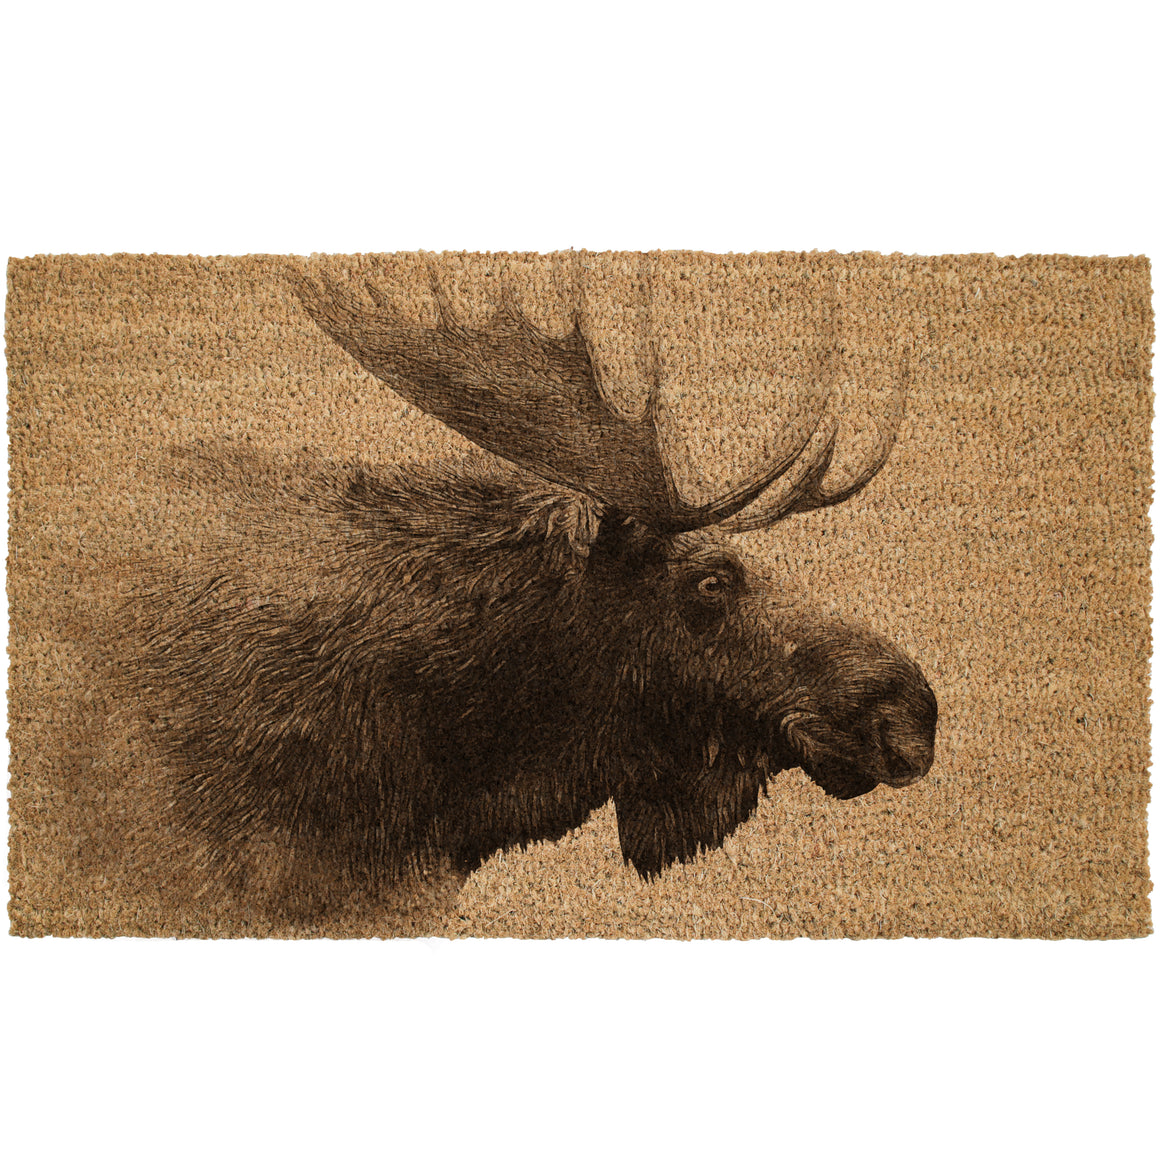 Moose Profile Cabin Coir Doormat